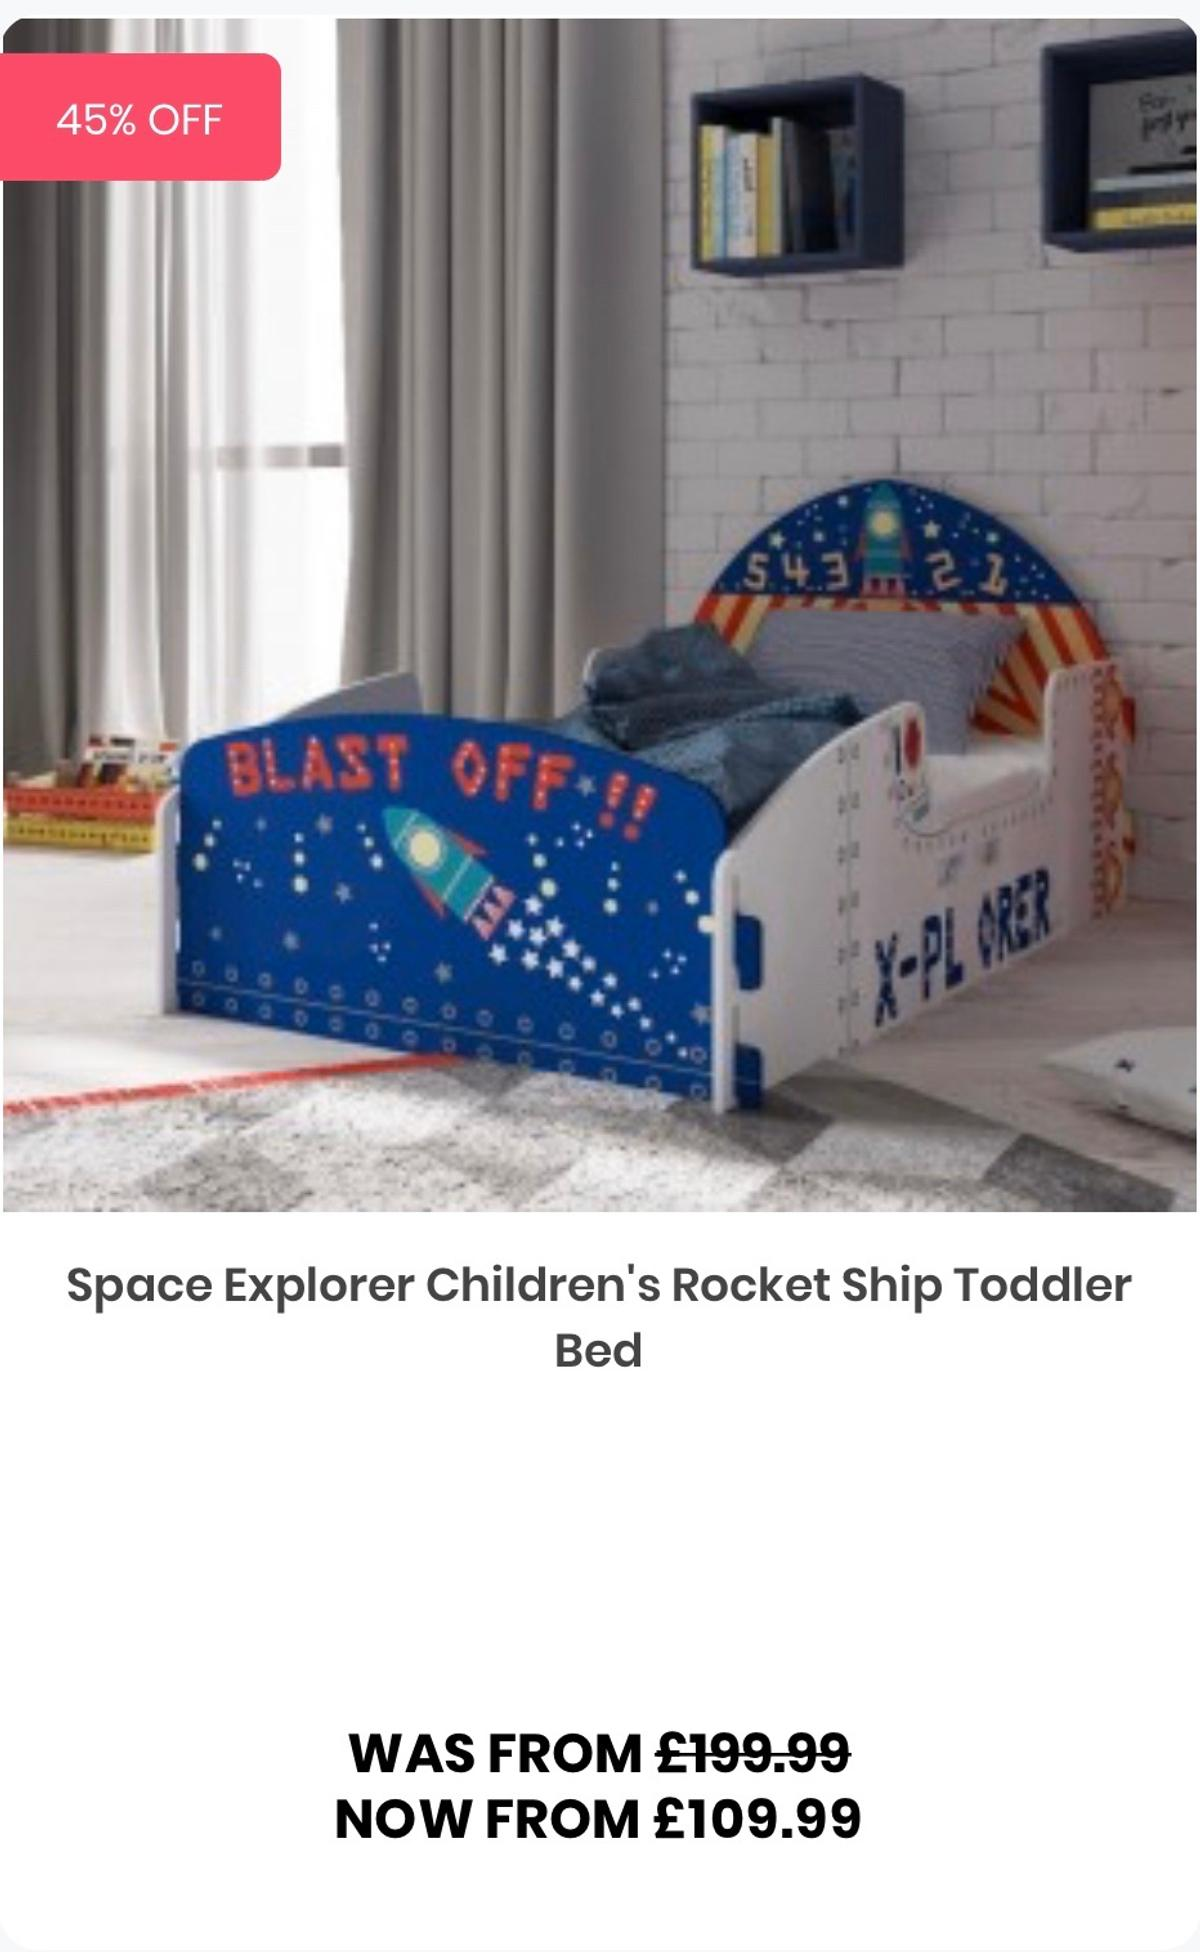 Space Explorer Toddler Bed Matchin Bookcase In Dy11 Wyre Forest For 25 00 For Sale Shpock